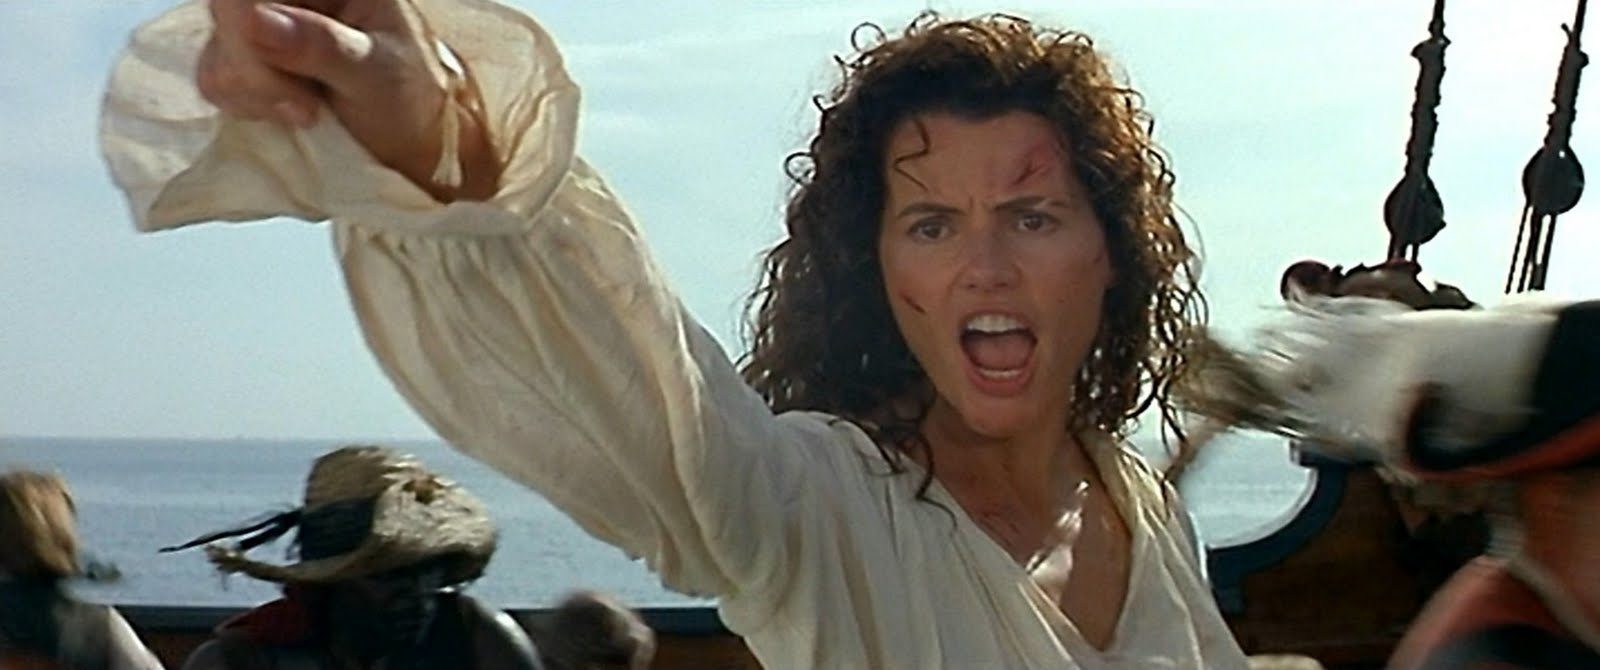 Geena Davis Pirate Submited Images Pic Fly Picture